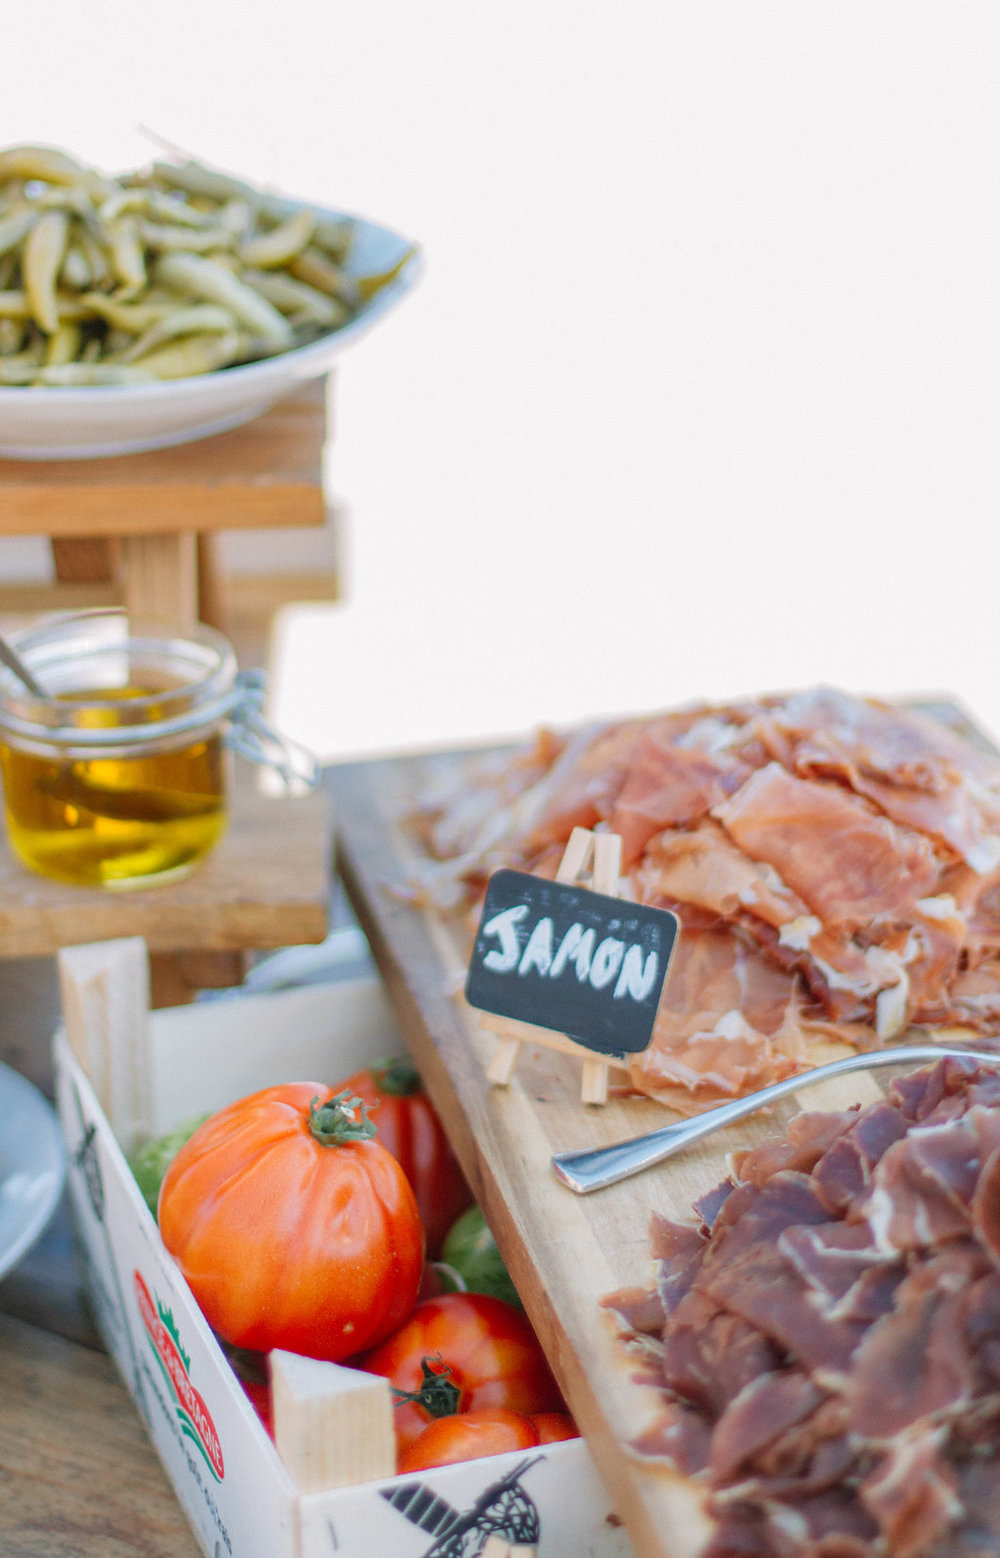 Jamon food station.jpg